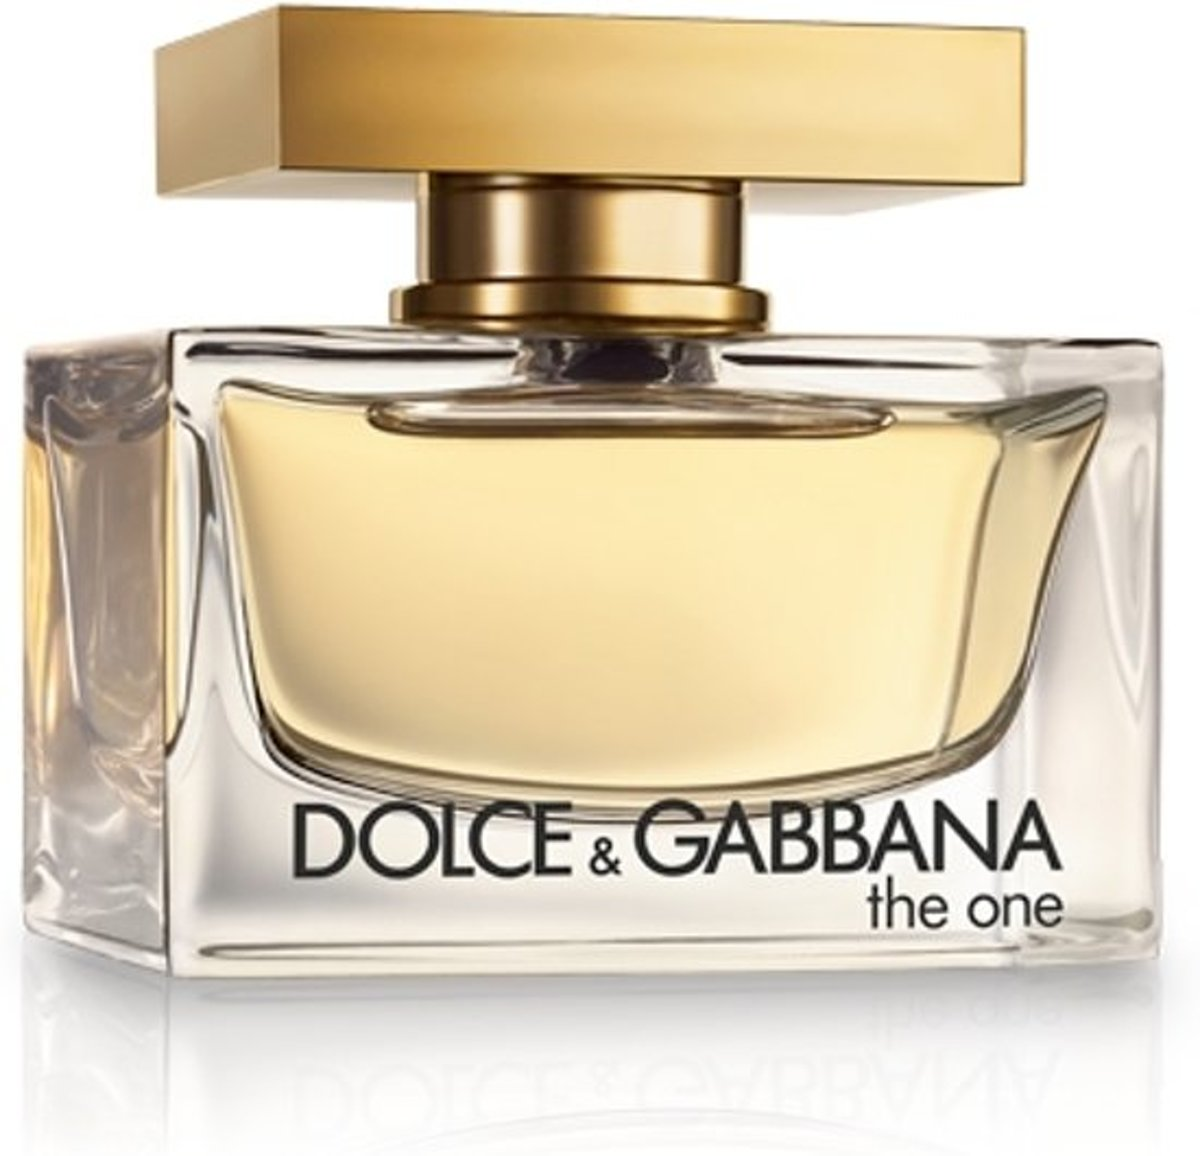 Dolce & Gabbana the one - 75 ml - Eau de parfum - Damesparfum